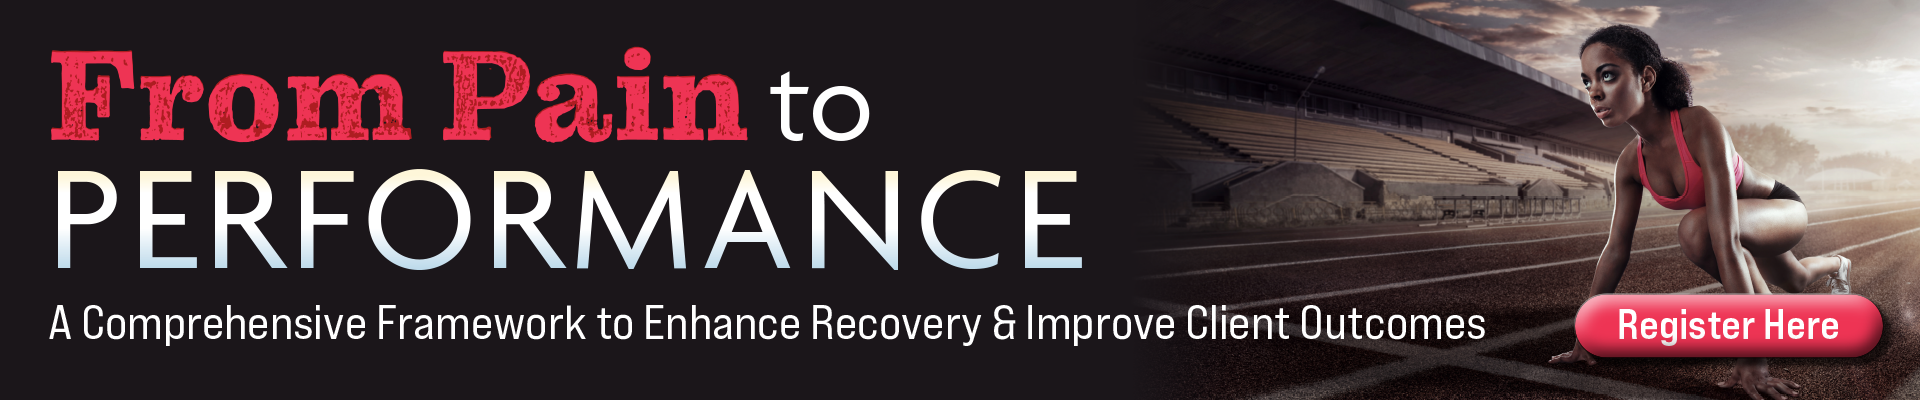 From Pain to Performance: A Comprehensive Framework to Enhance Recovery & Improve Client Outcomes